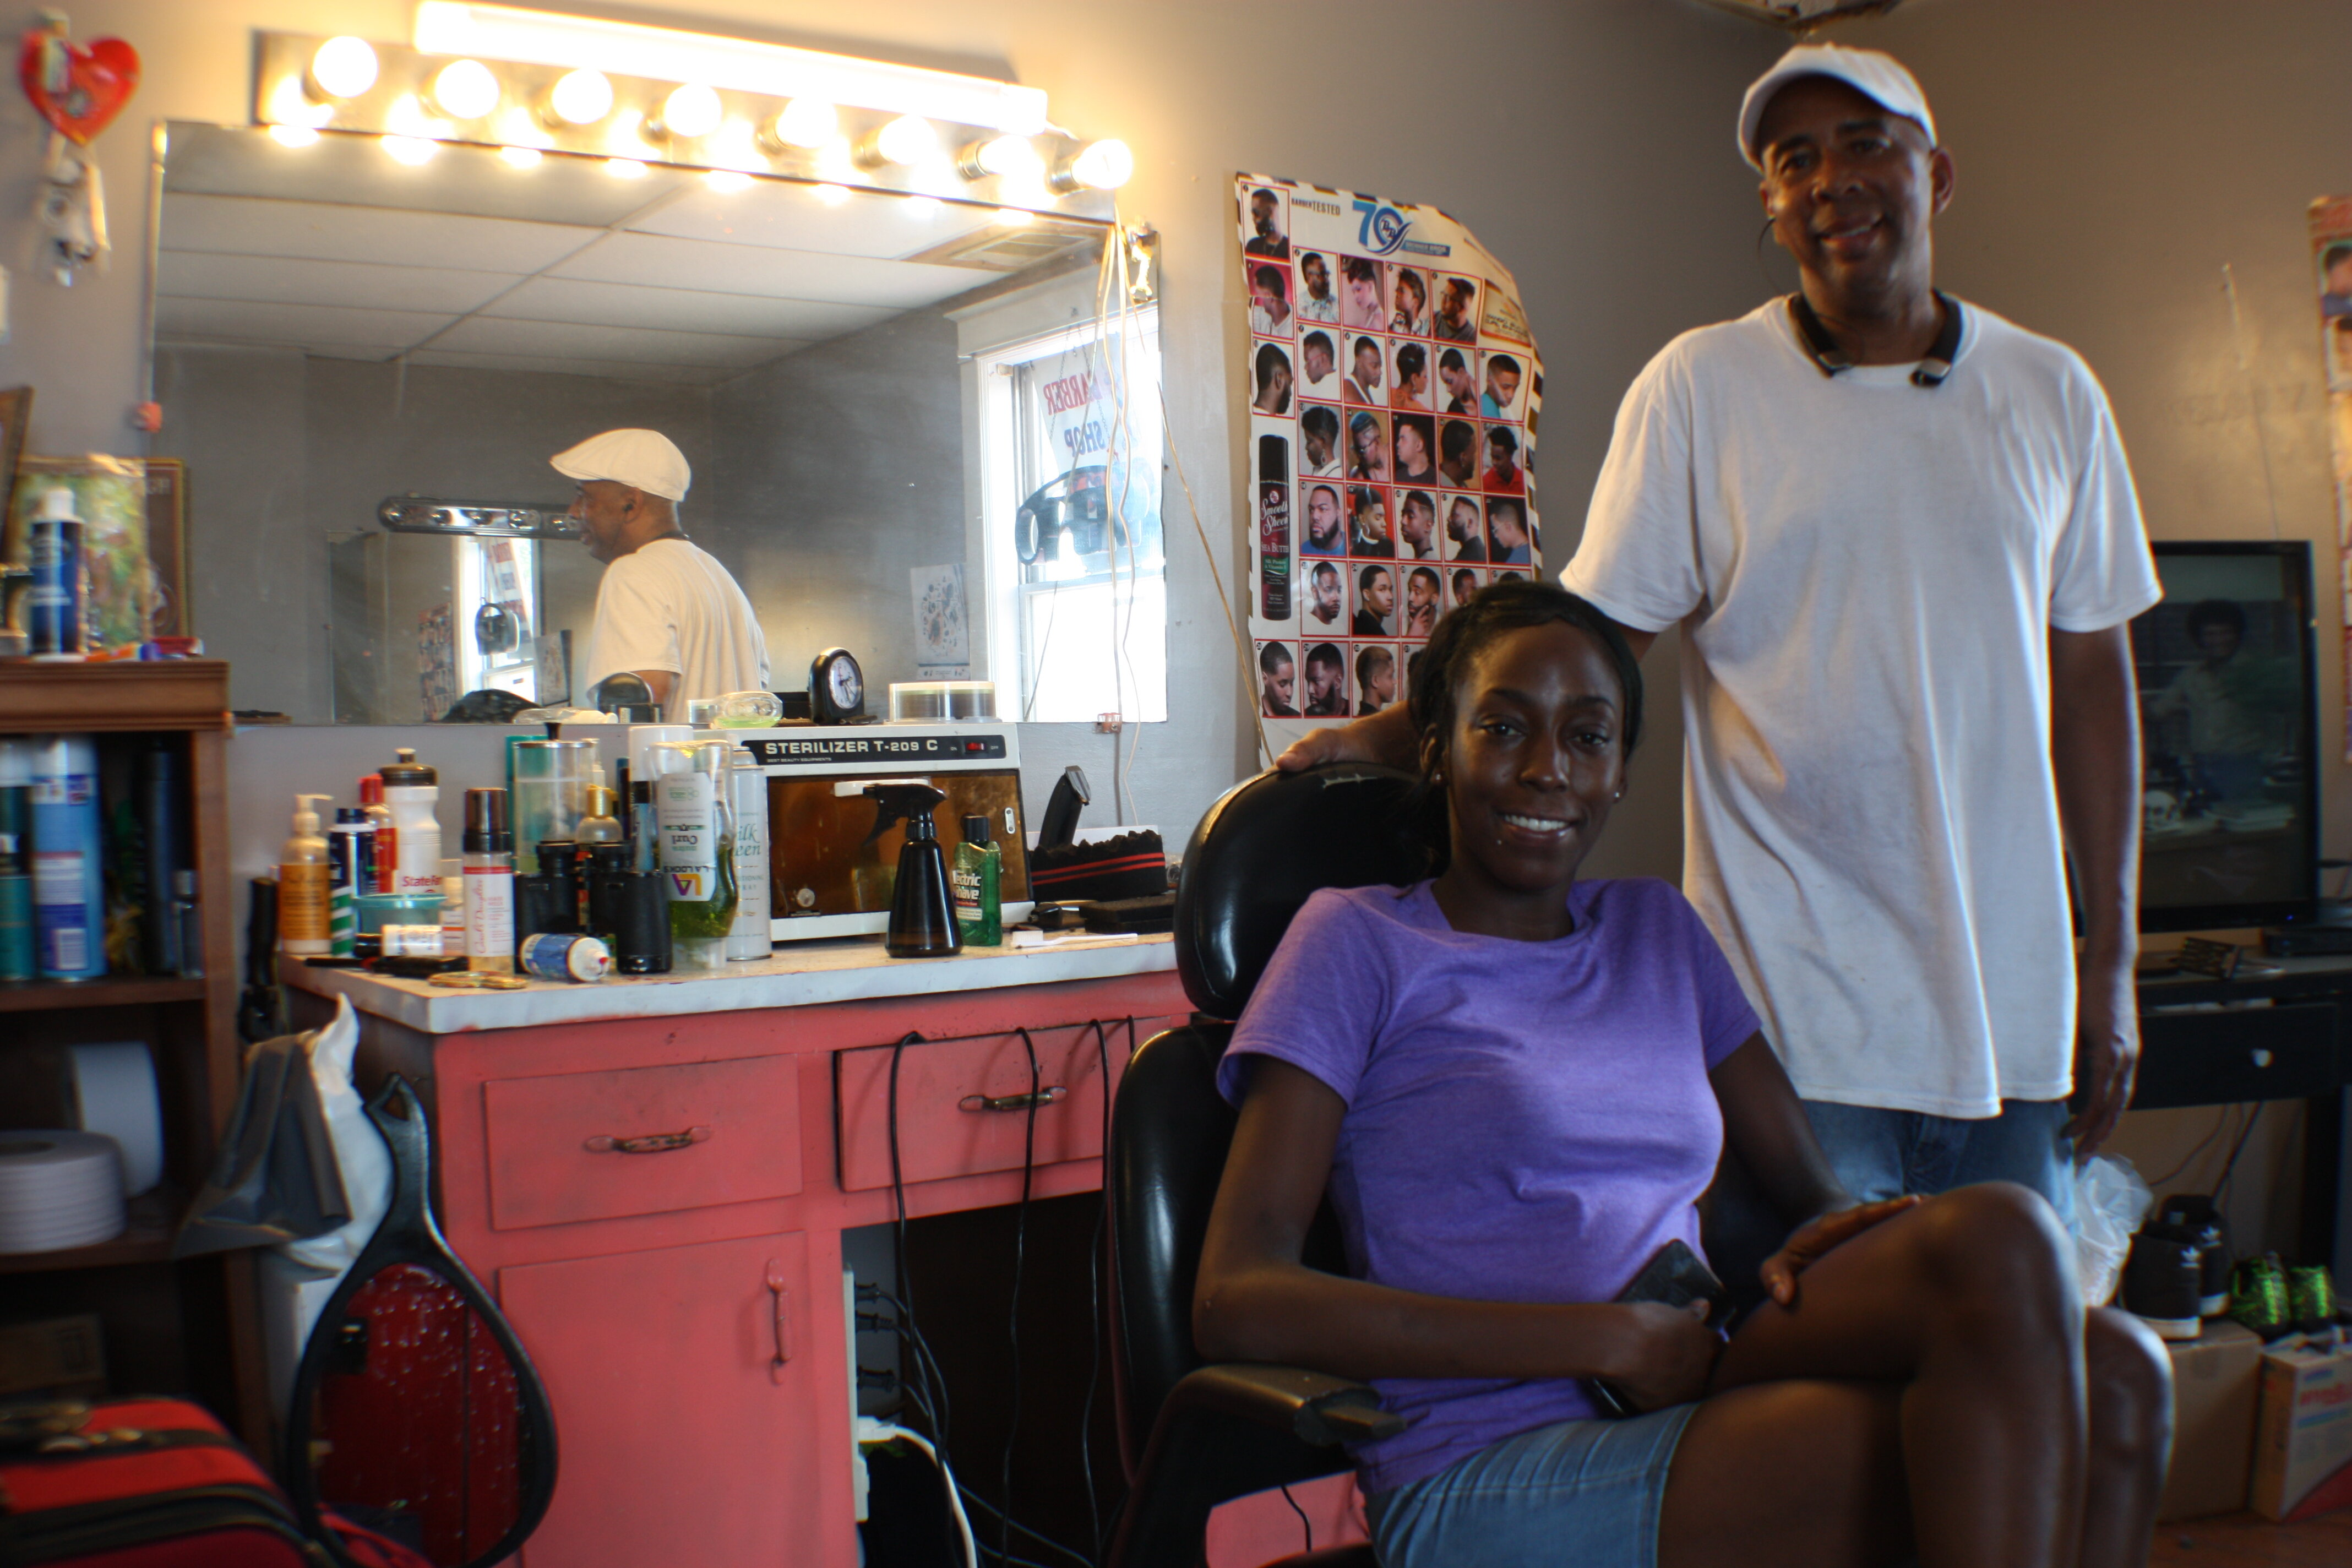 Stylist Erica Ward and master barber and manager Tony Mckissick pose inside Pyramid Famous Cutz. (Cole Bradley)